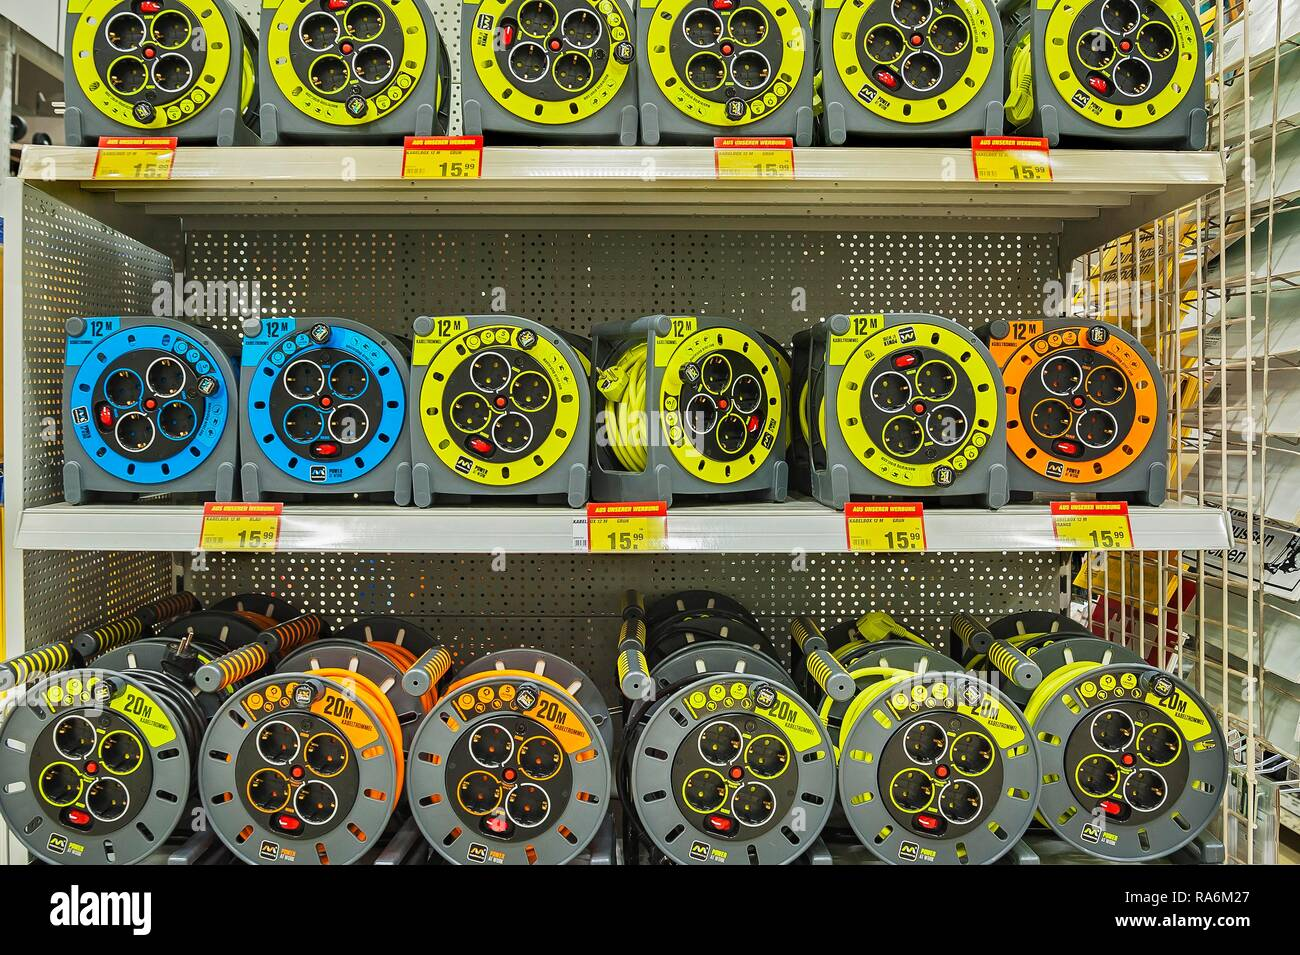 Cable drums, hardware store, Germany - Stock Image